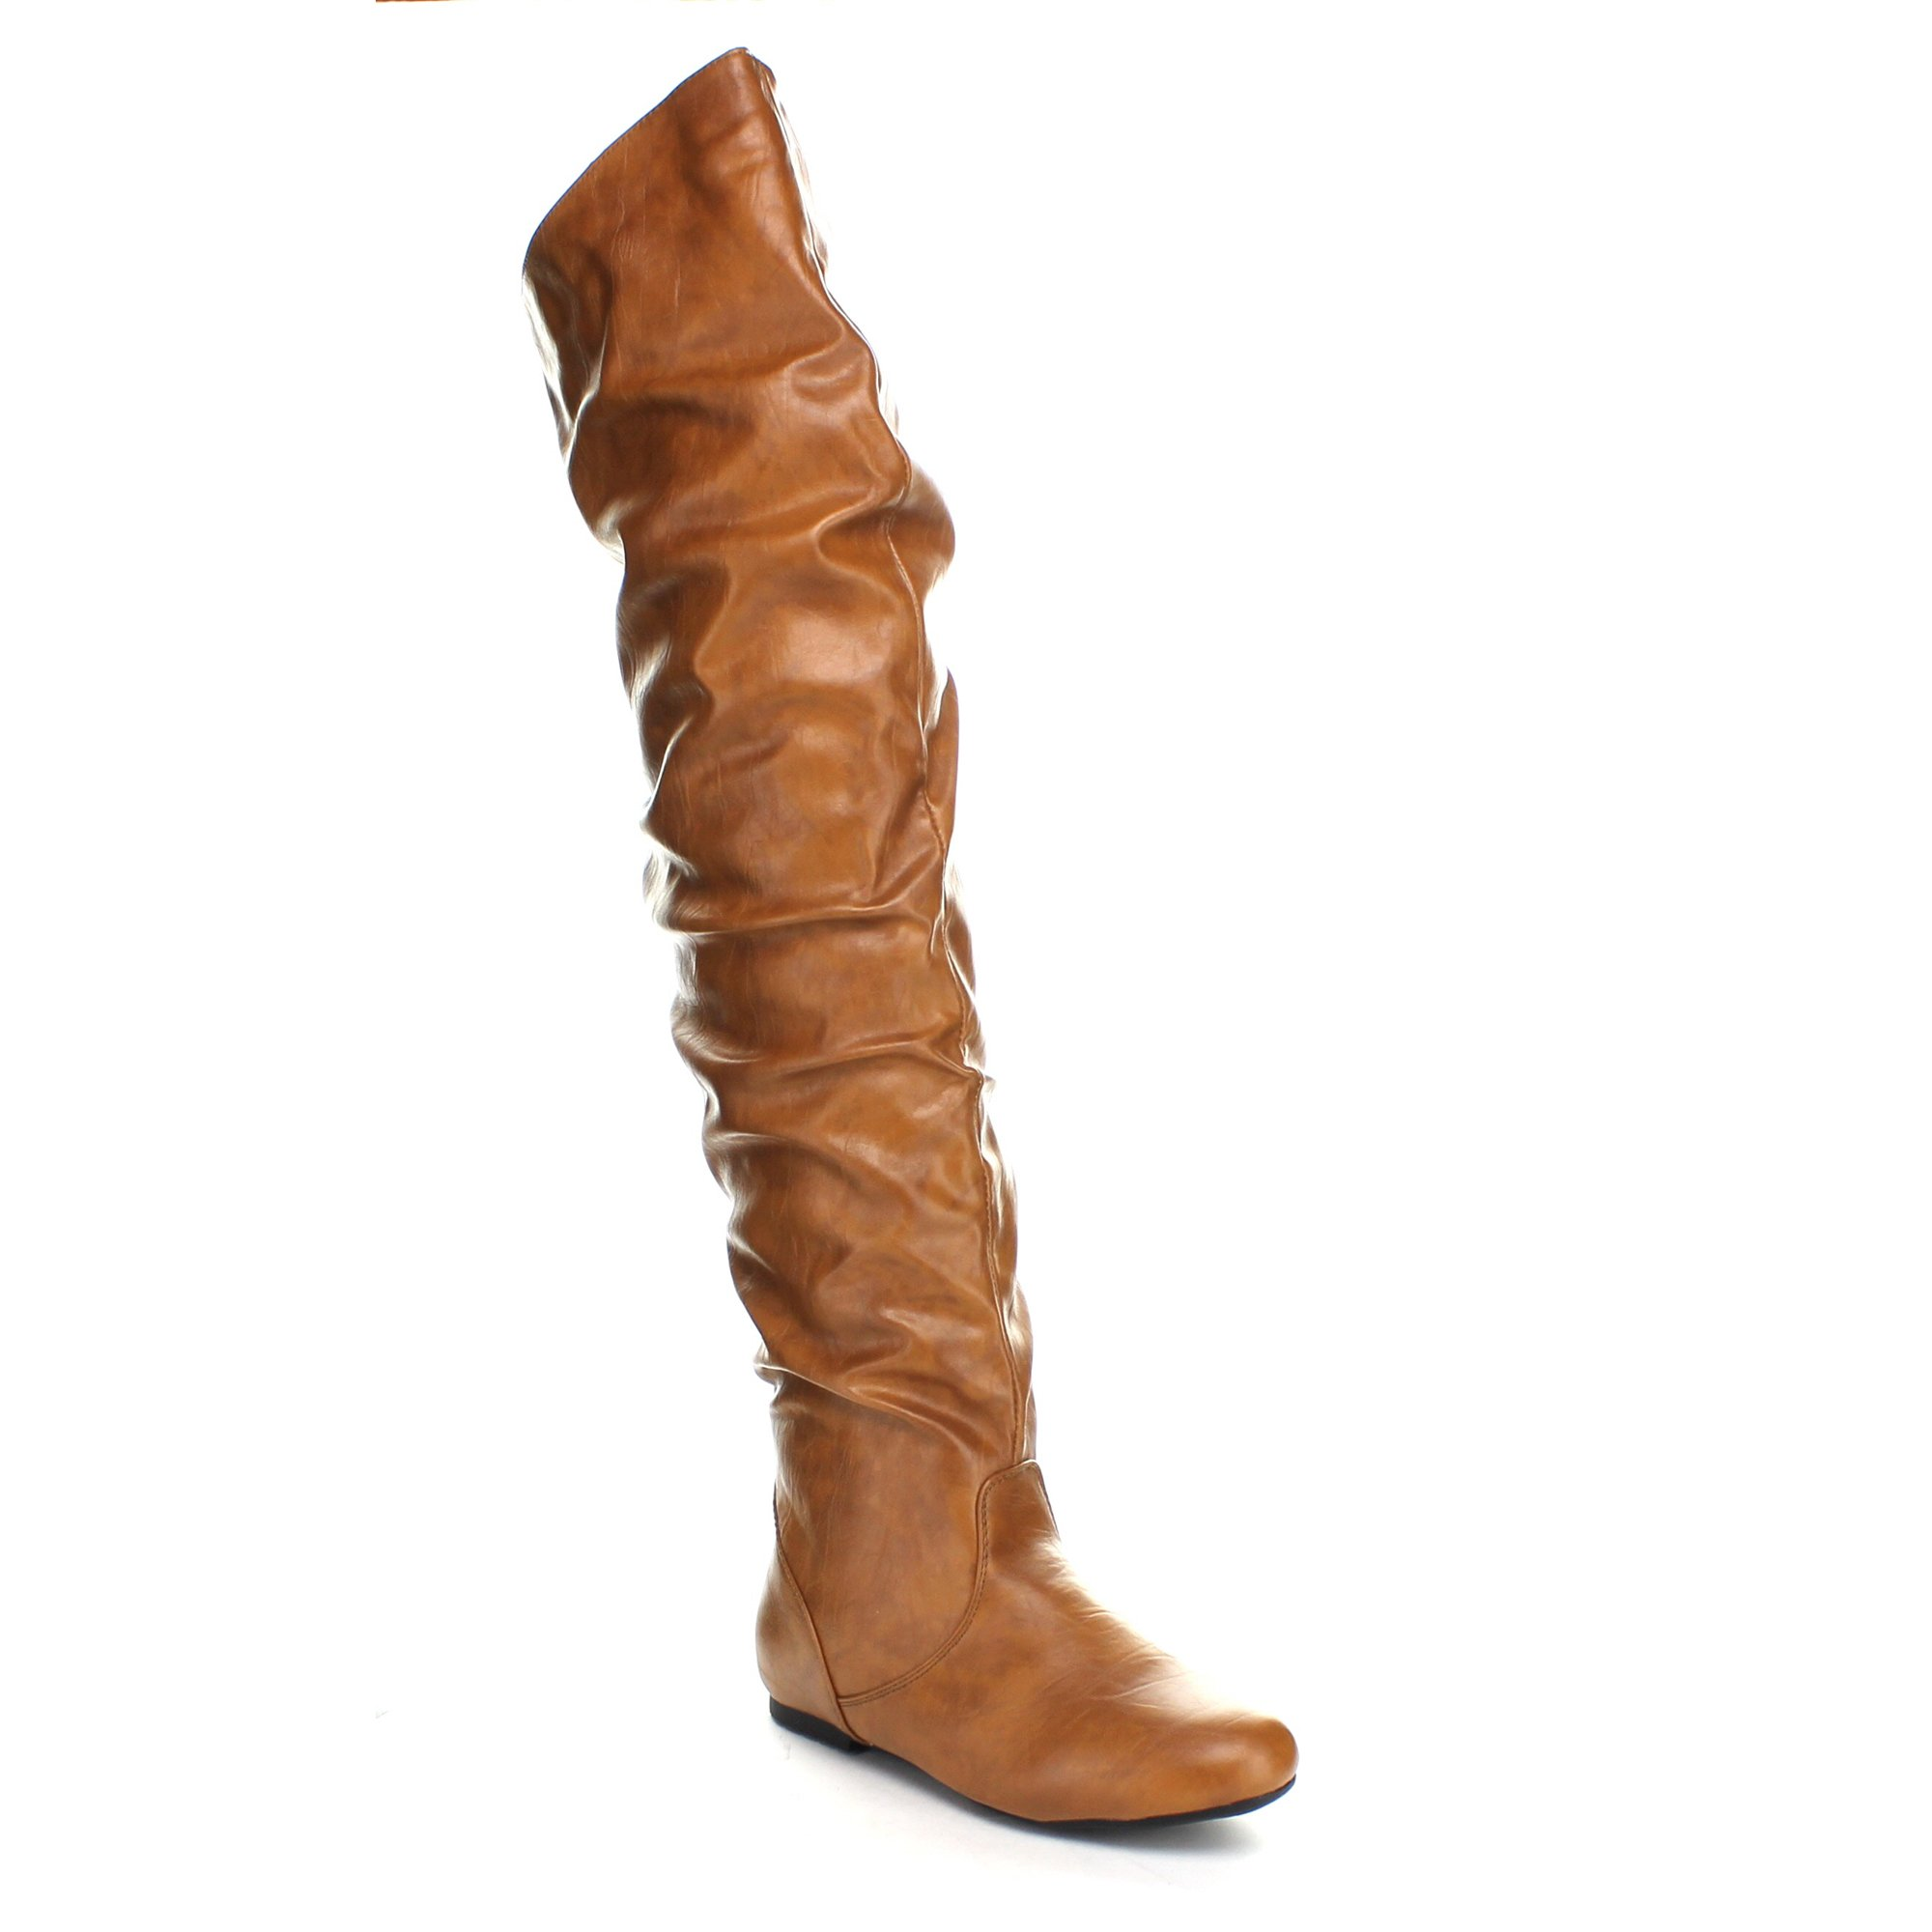 Top Moda JL-21 Women's Over The Knee Slouch Boots, Tan 5.5